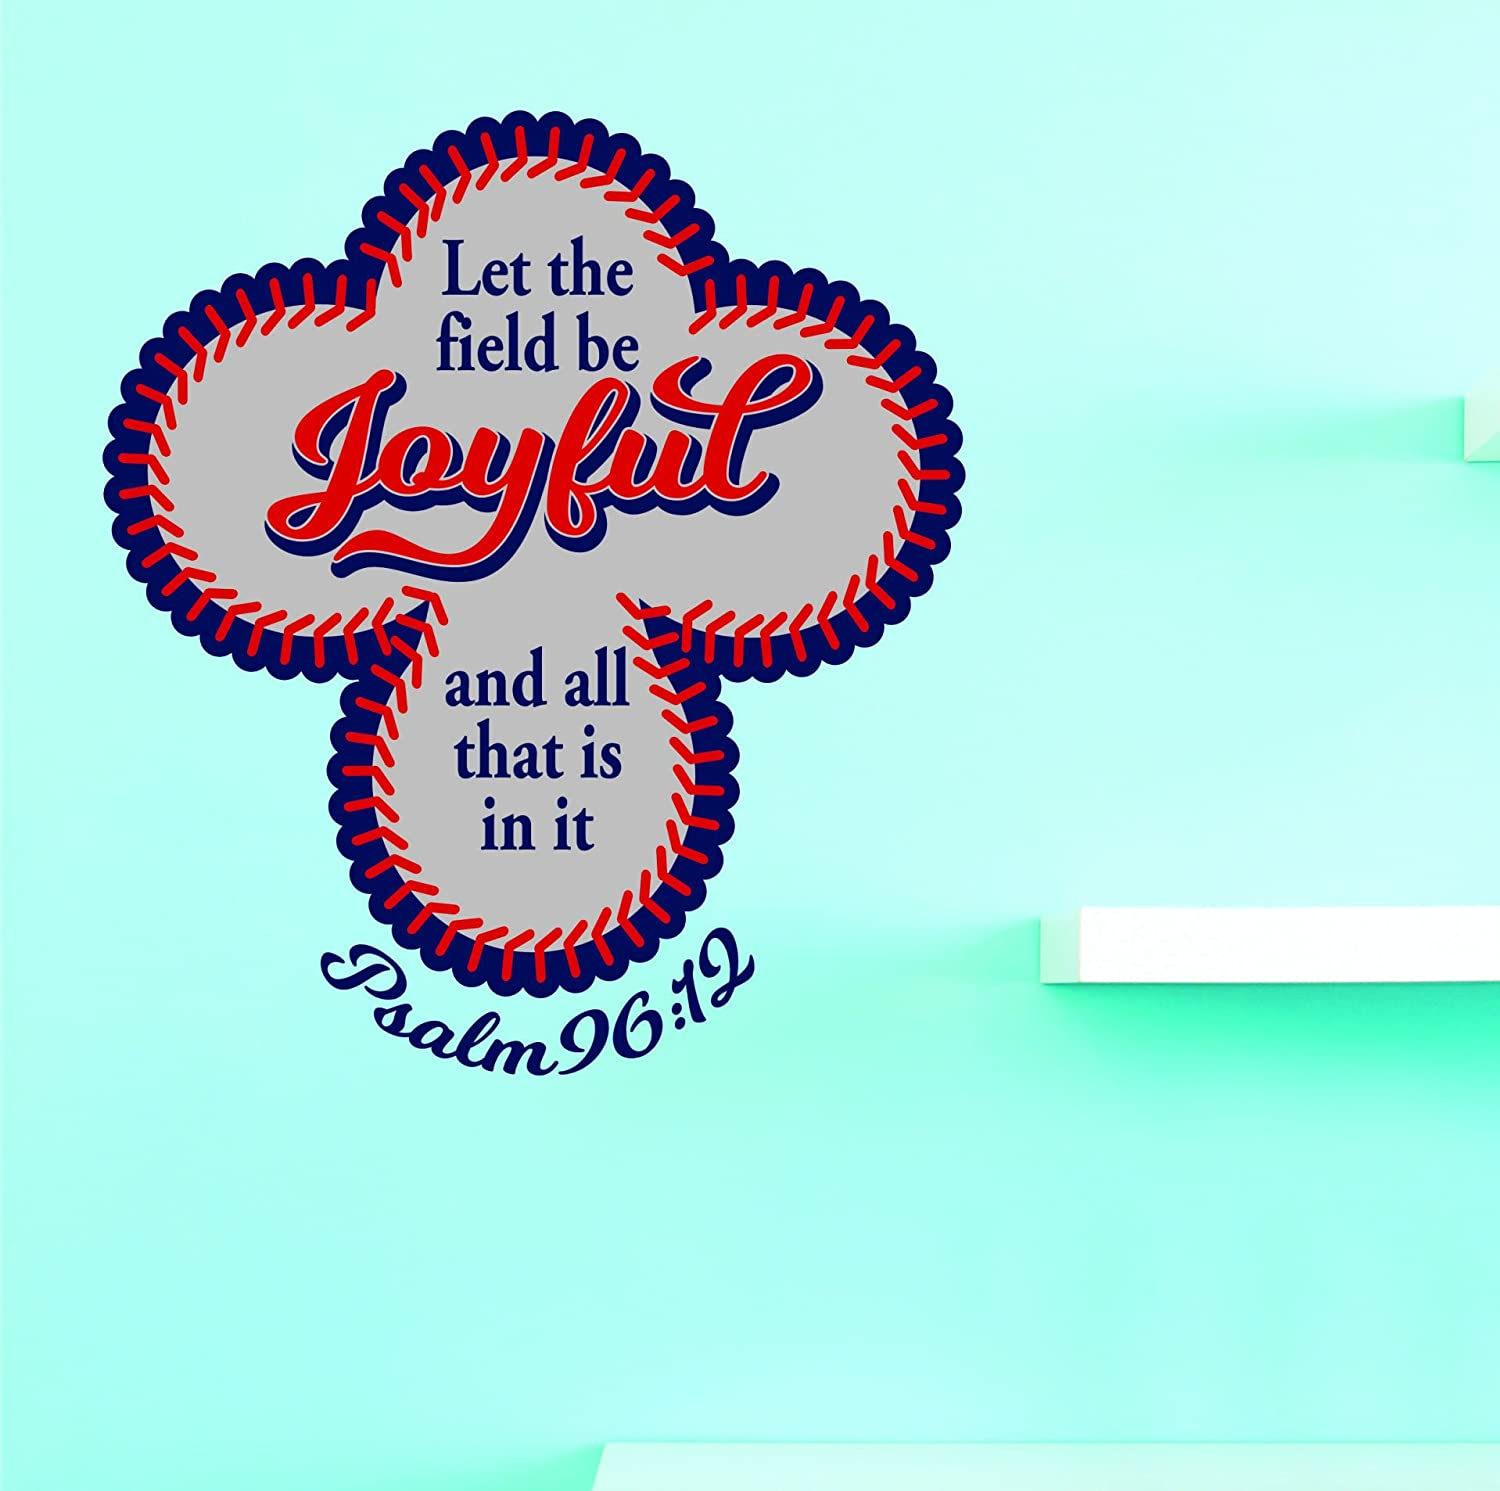 Design with Fixed price for sale Vinyl JER 2311 3 Hot the Chicago Mall Decals be joy New Let field